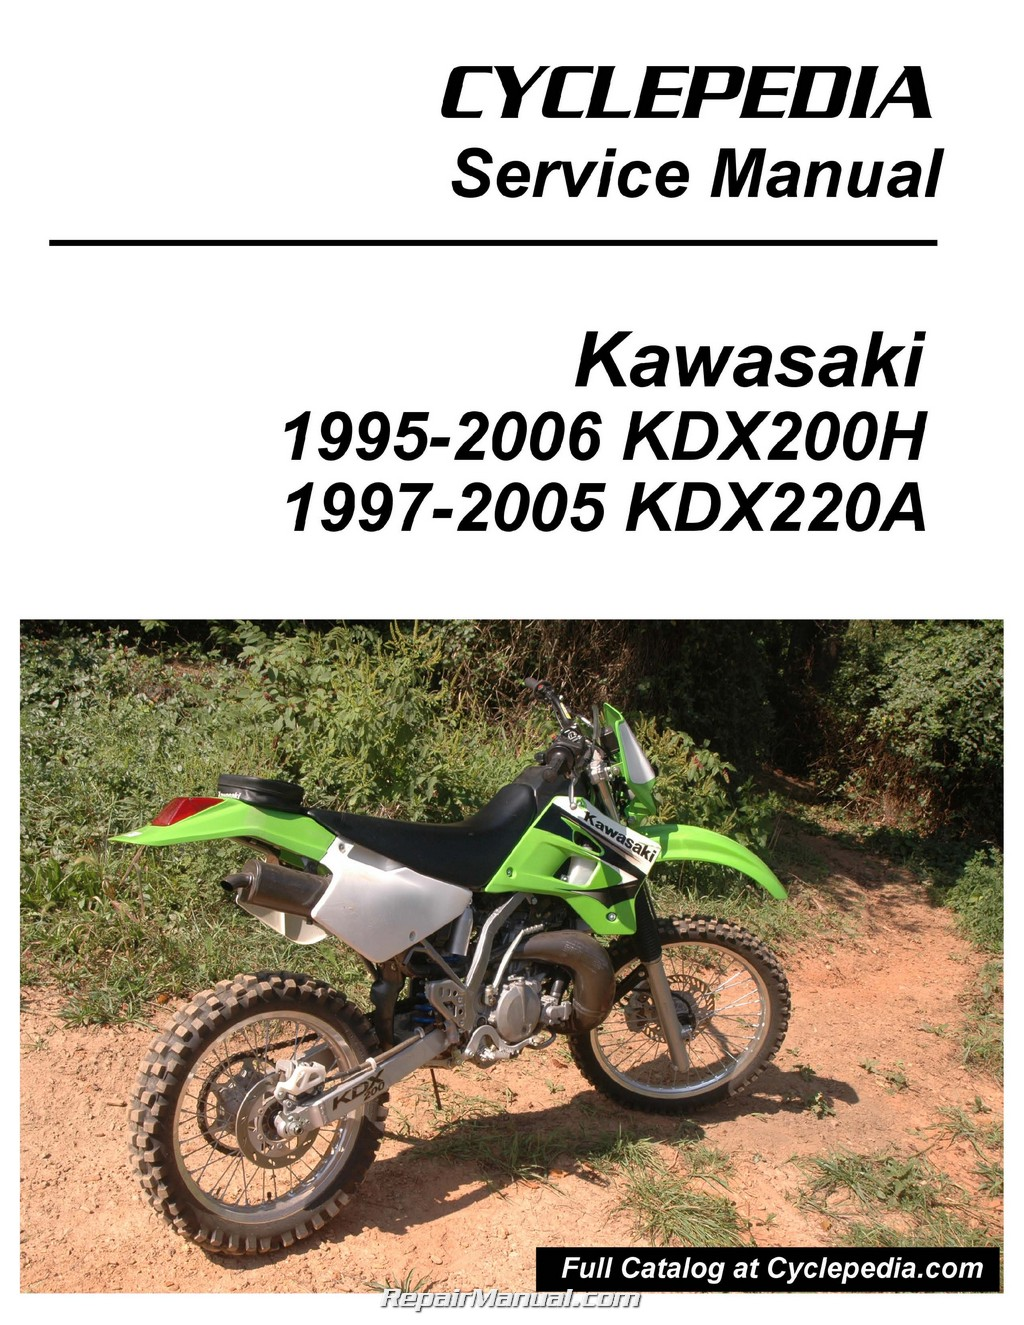 kdx 200 manual kawasaki kdx200h kdx220a cyclepedia printed motorcycle service manual 800 4